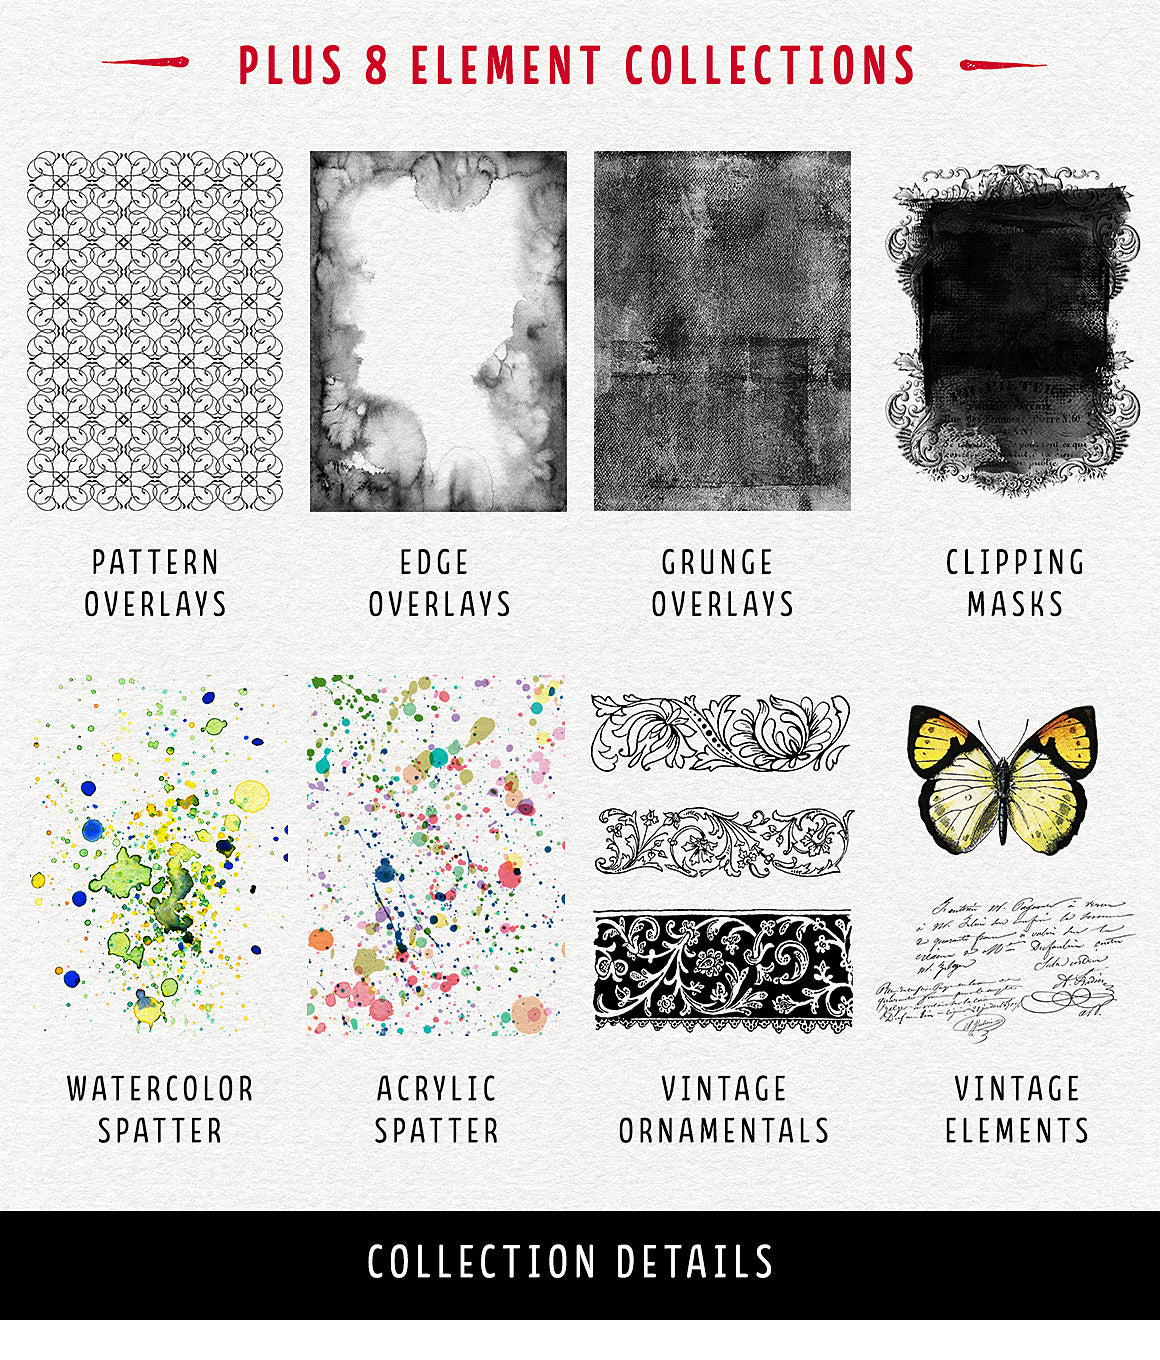 8 element collections of overlays, vintage French ephemera, patterns, ornaments, masks and more.